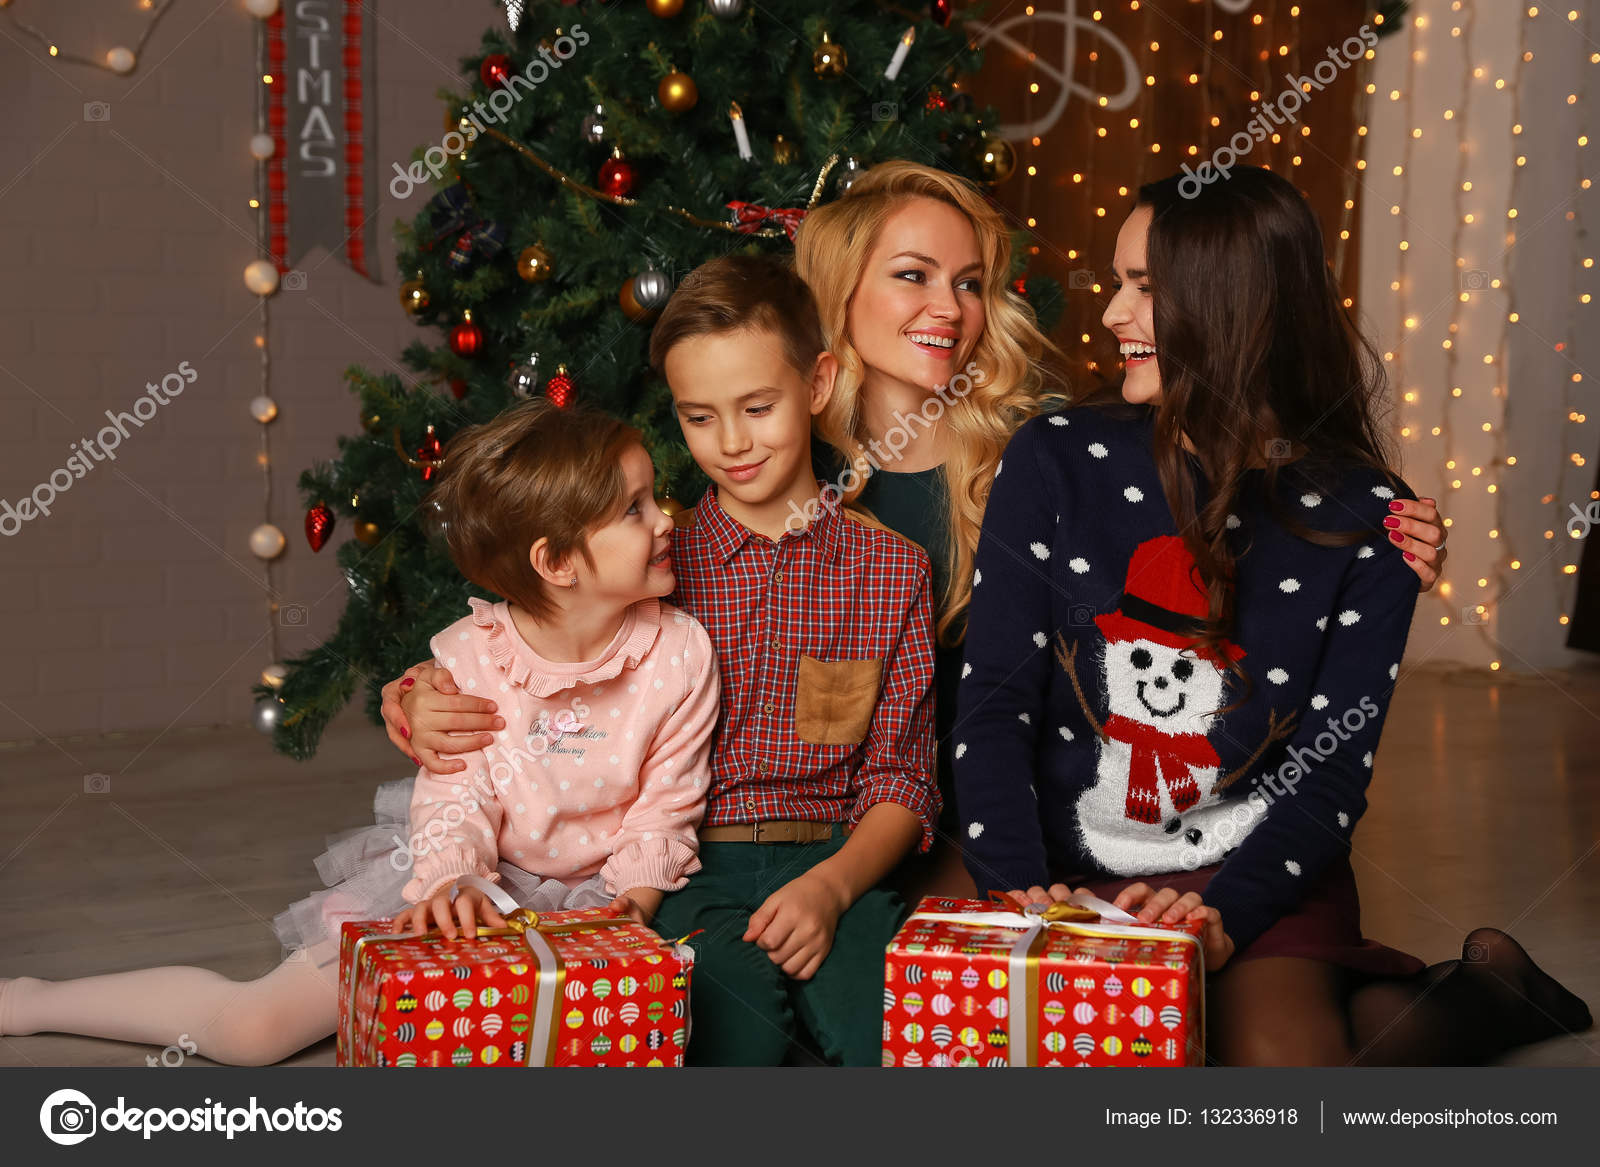 Happy Parents And Children Sharing Christmas Hugs Looking At